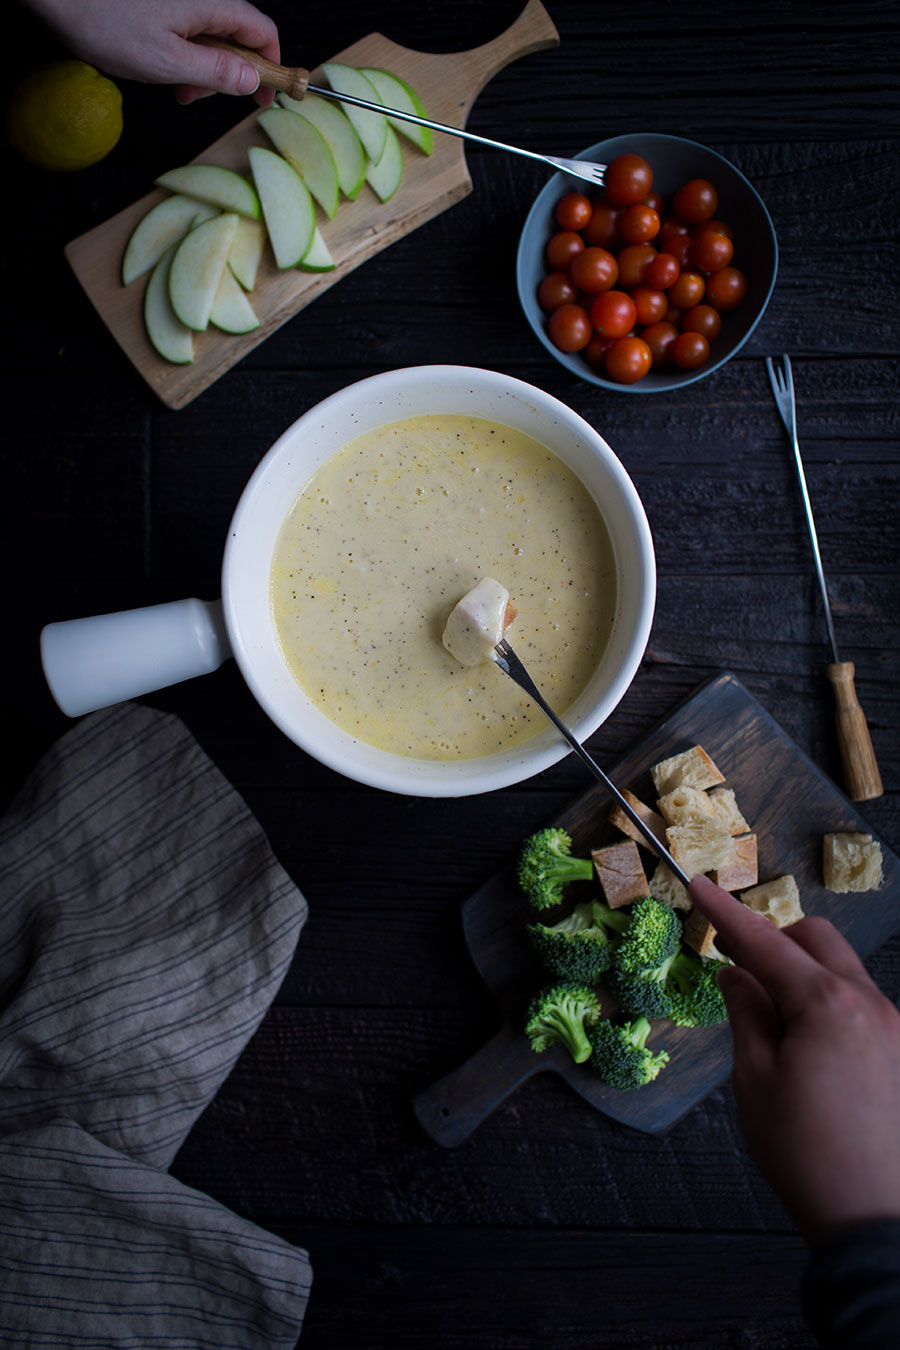 This Classic Swiss Cheese Fondue Recipe uses Emmentaler and Gruyére cheese, and it's PERFECT for fondue parties. When you get the recipe, be sure to also check out my fondue party tips!